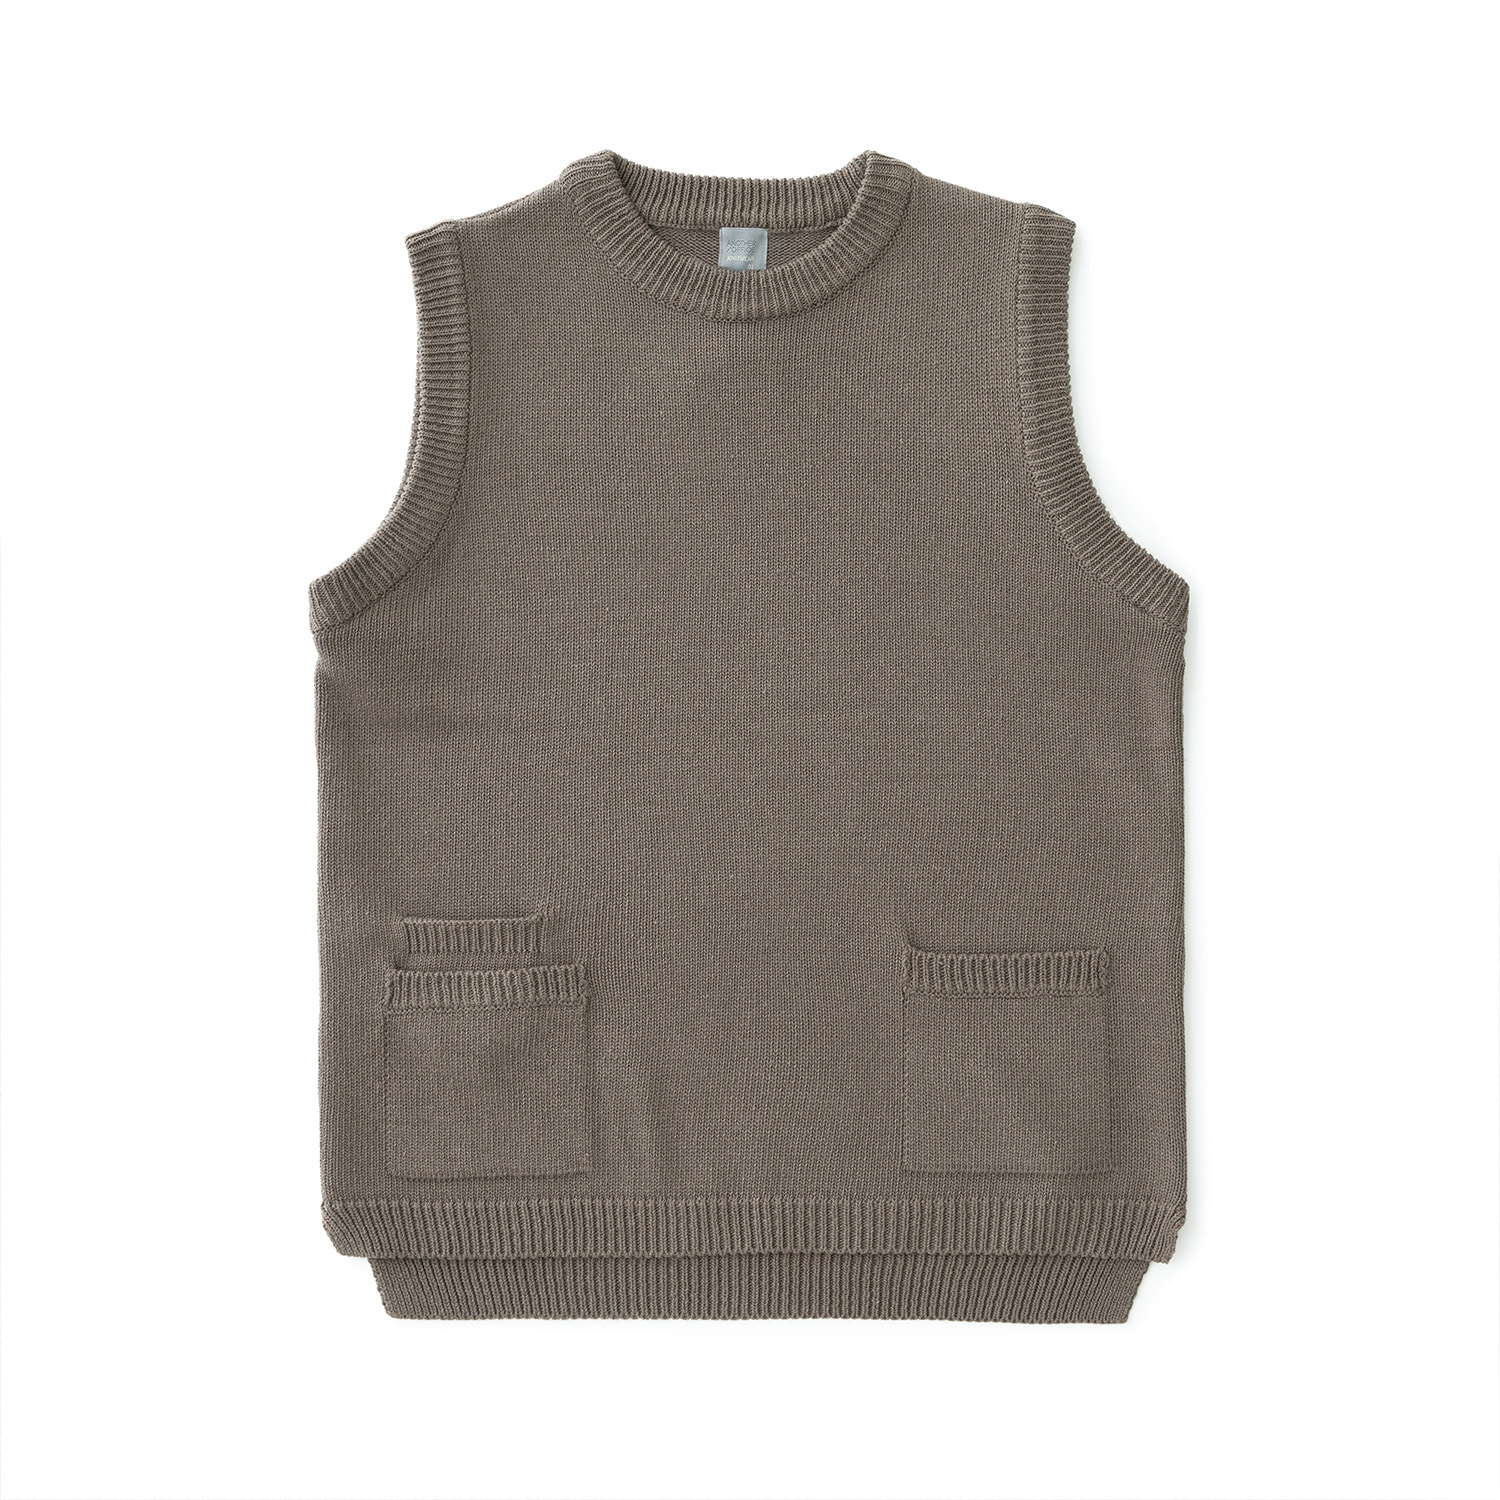 Balance Knit Vest (Warm Gray)